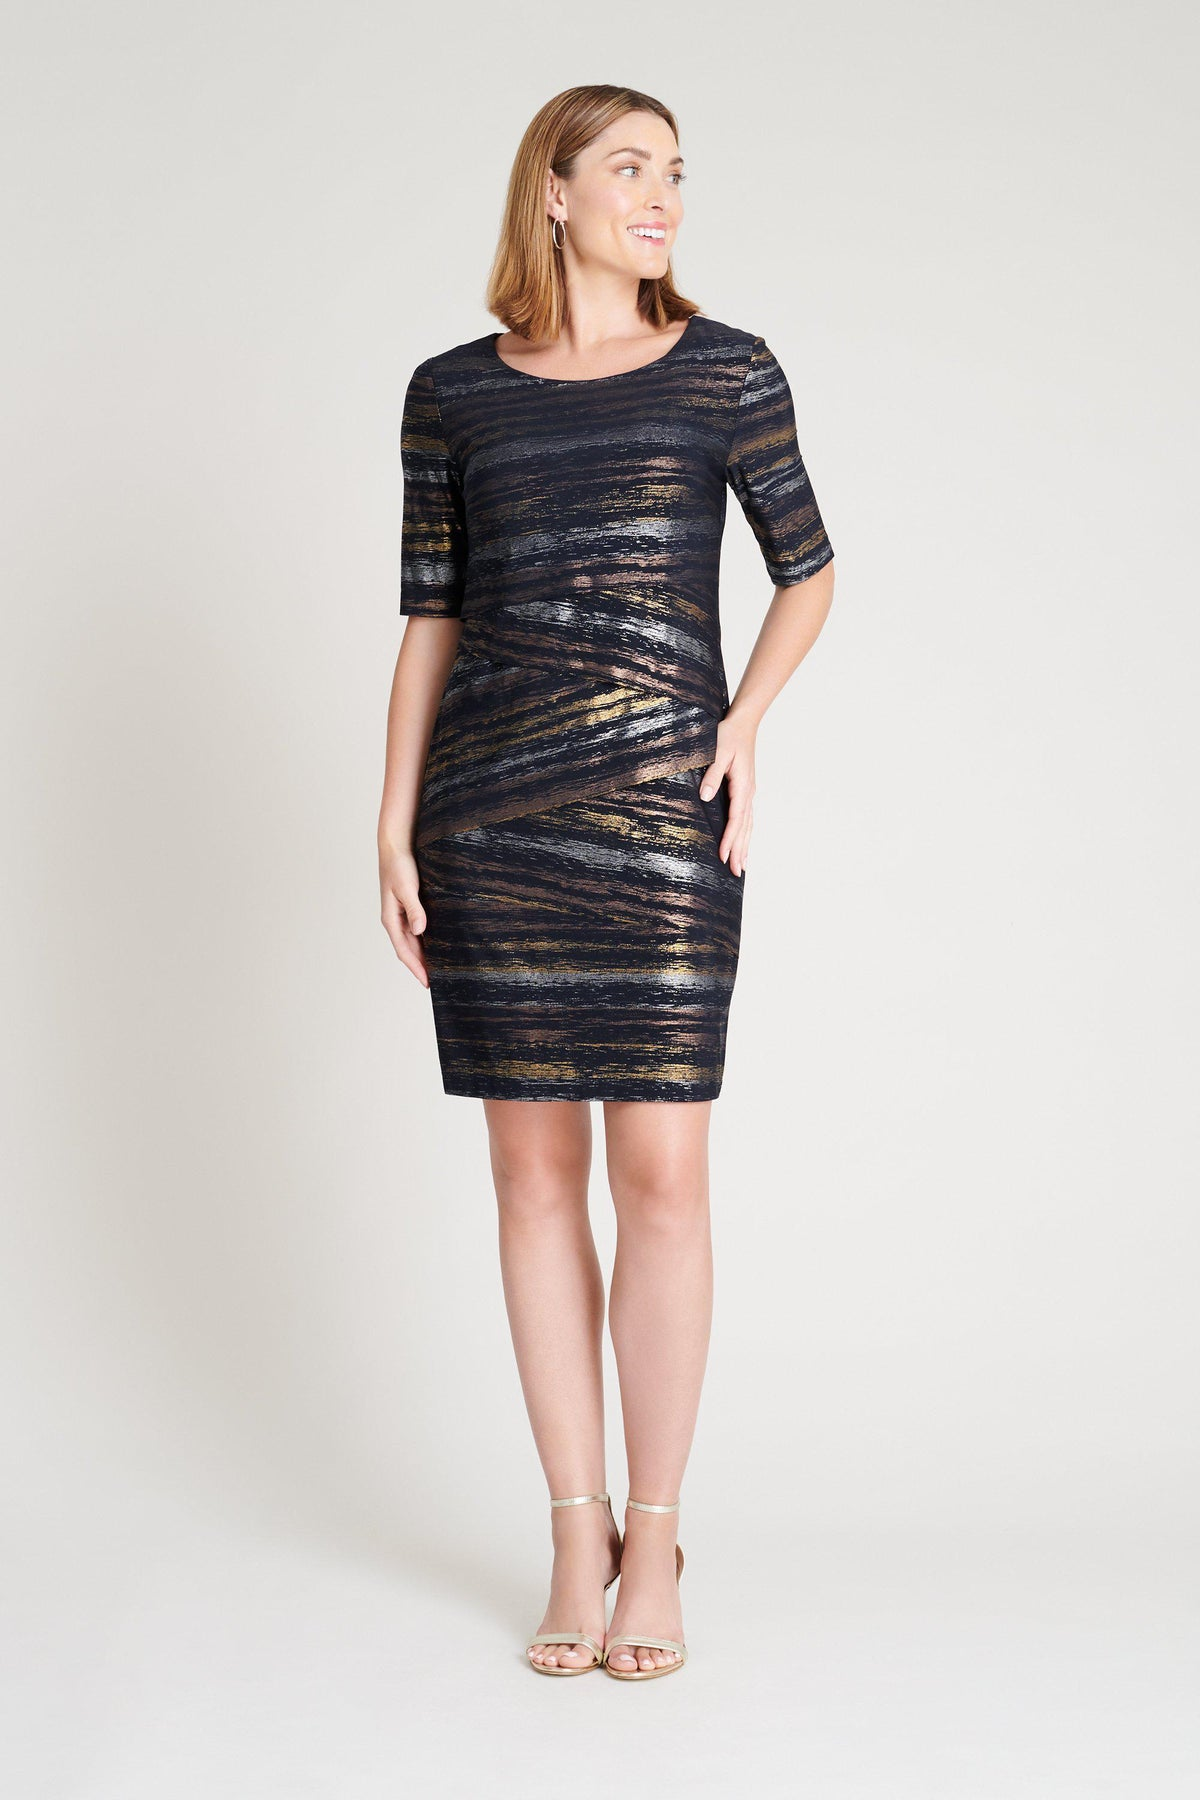 woman-wearing-connected-apparel-Brandy Asymmetrical Navy & Metallic Striped Dress-posing-on-plain-background